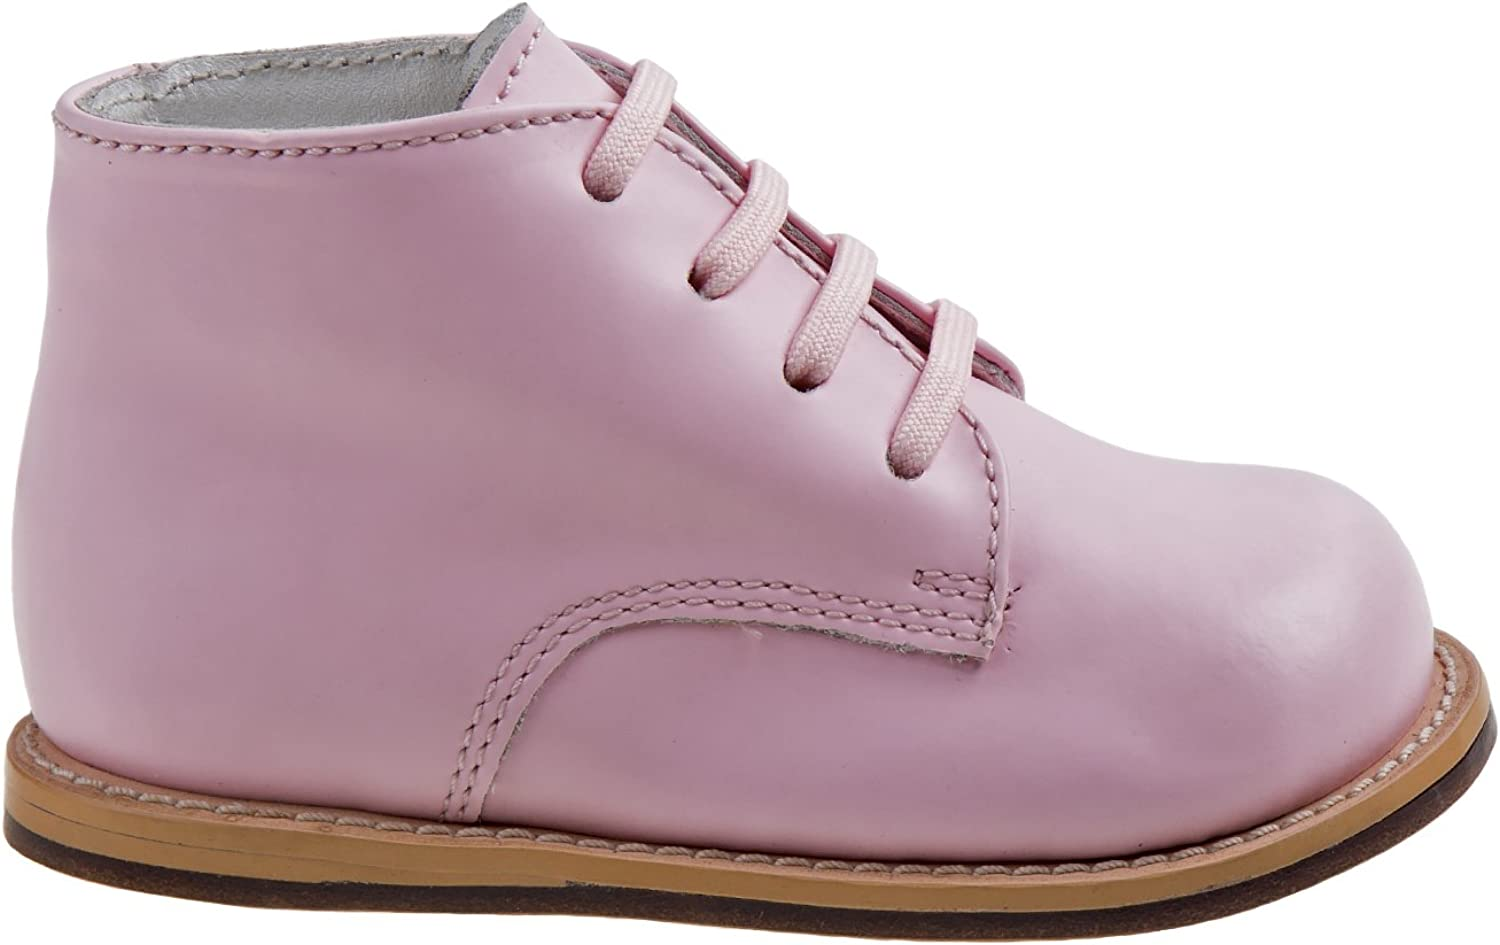 Josmo Infant//Toddler Girls First Walker Pink Oxfords Shoes